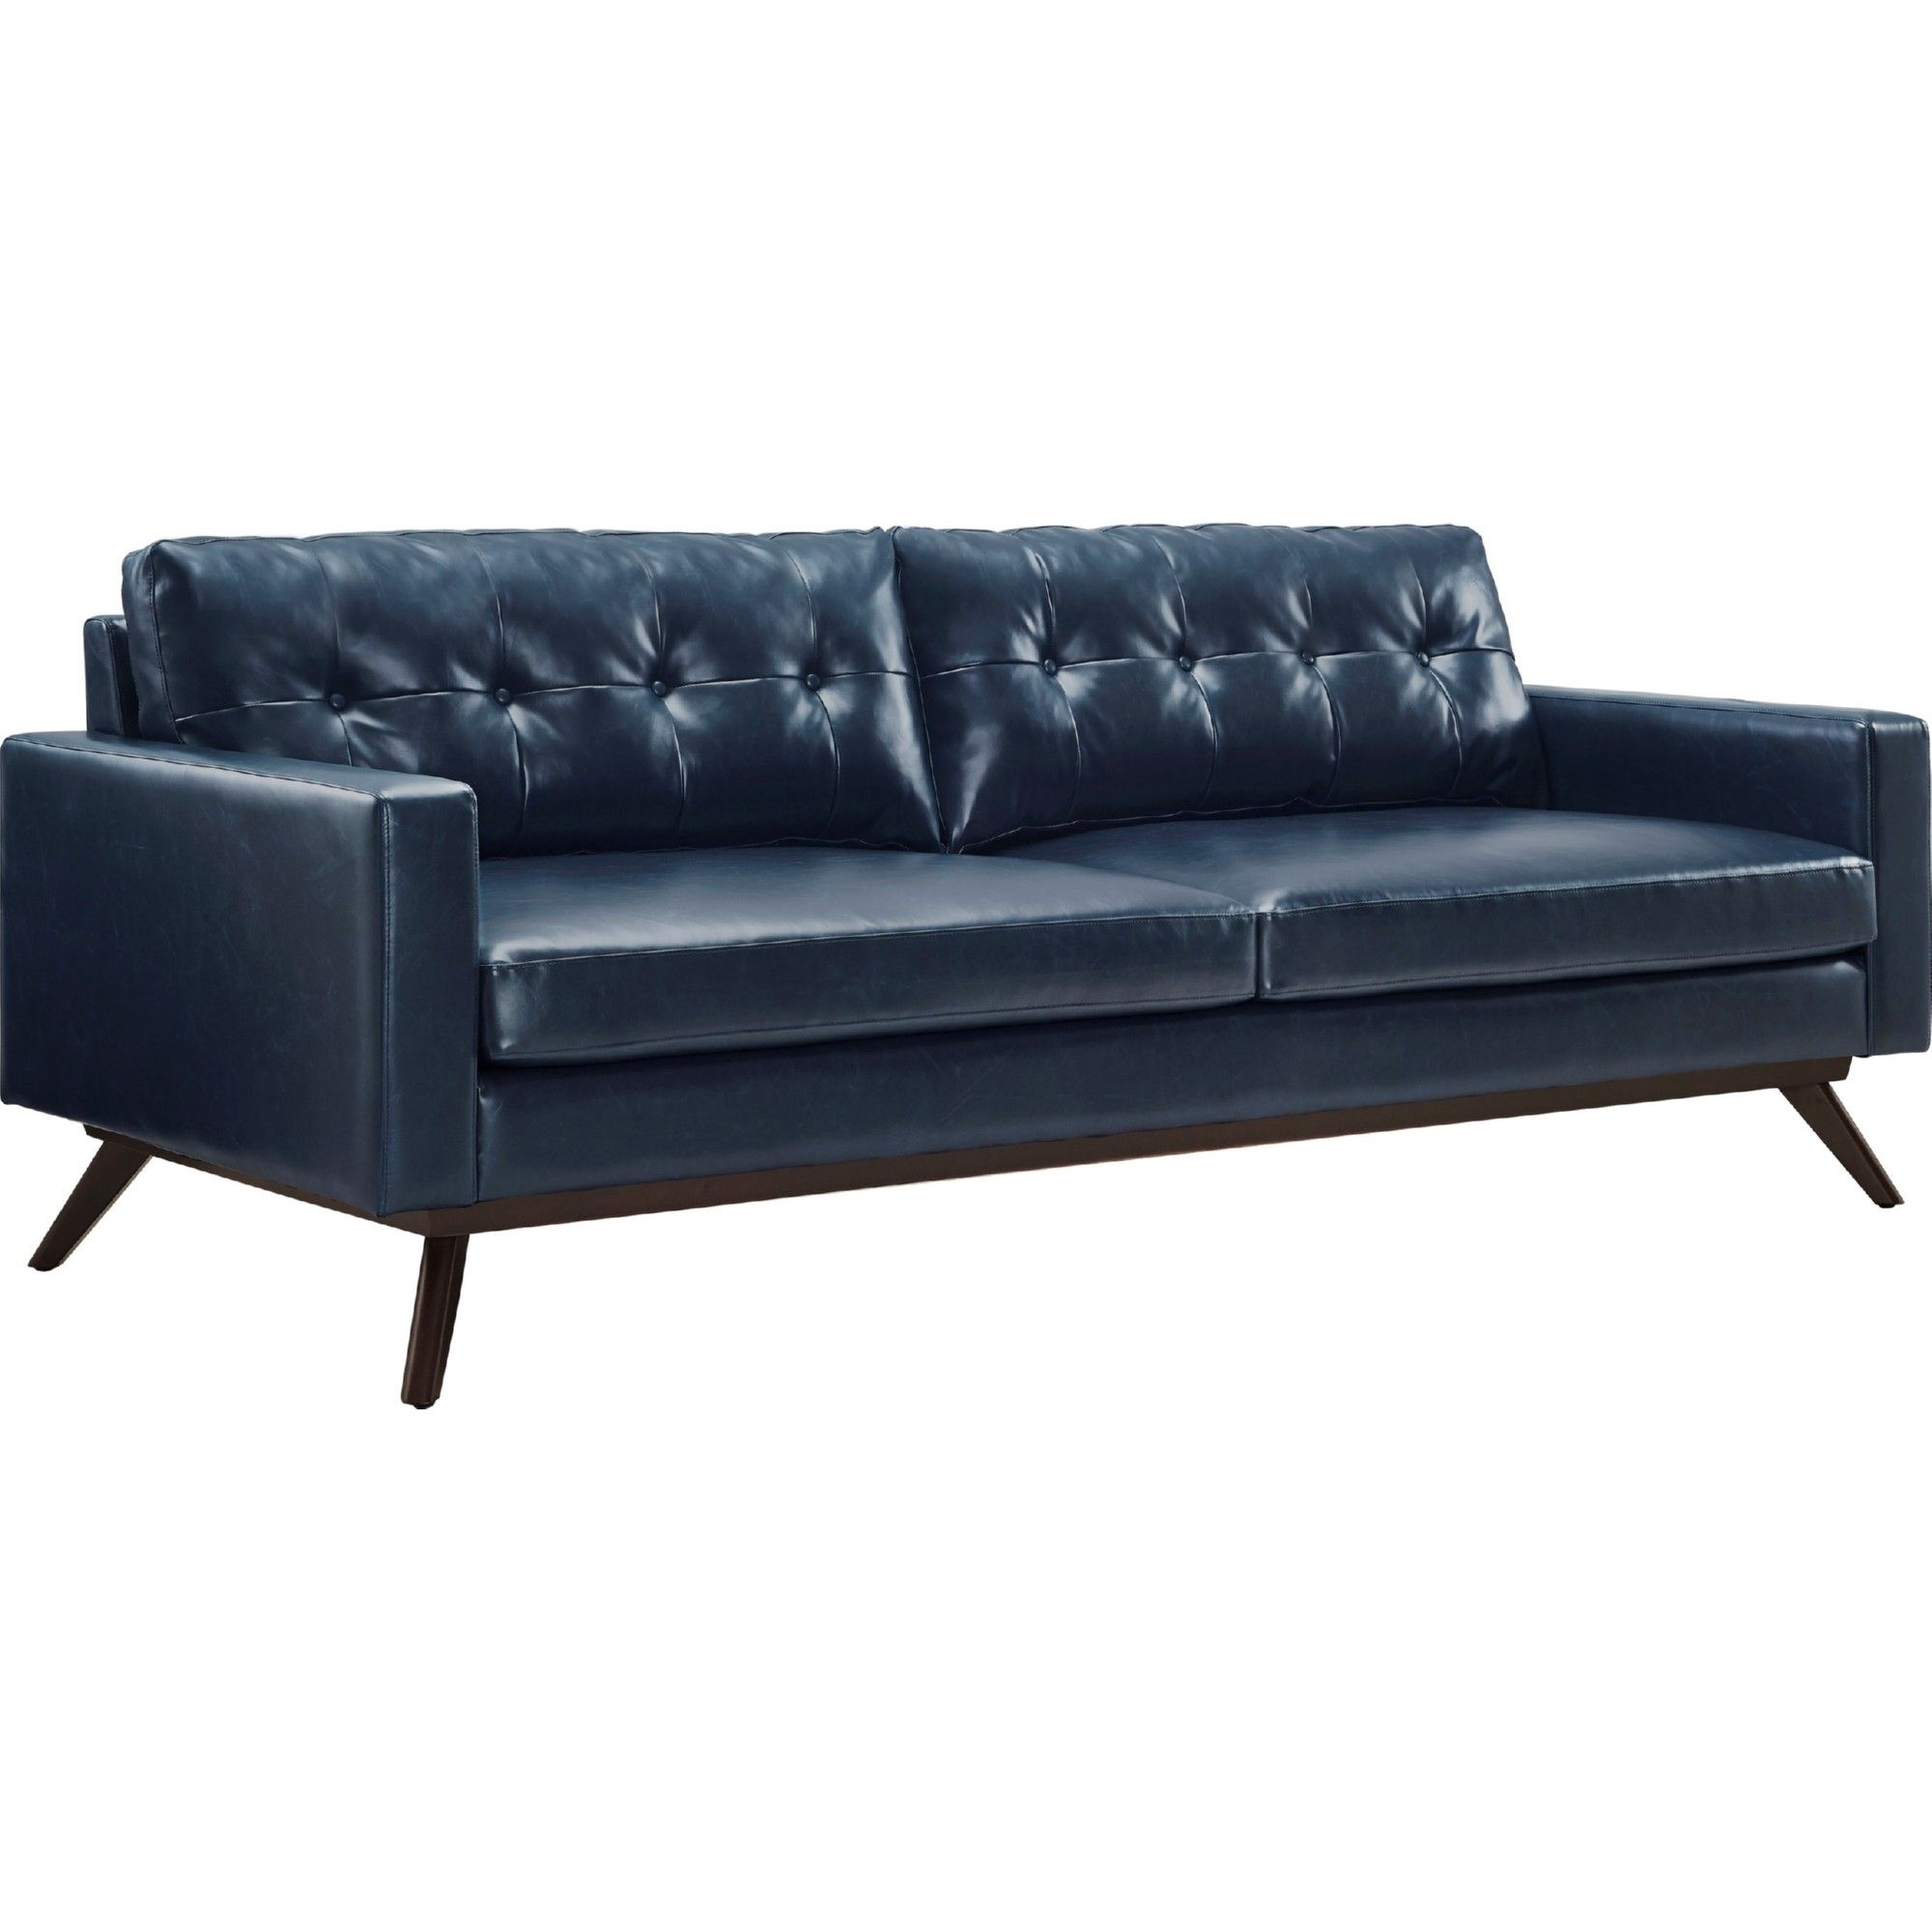 Tov furniture blake antique blue tufted eco leather sofa w for Blue leather sofa